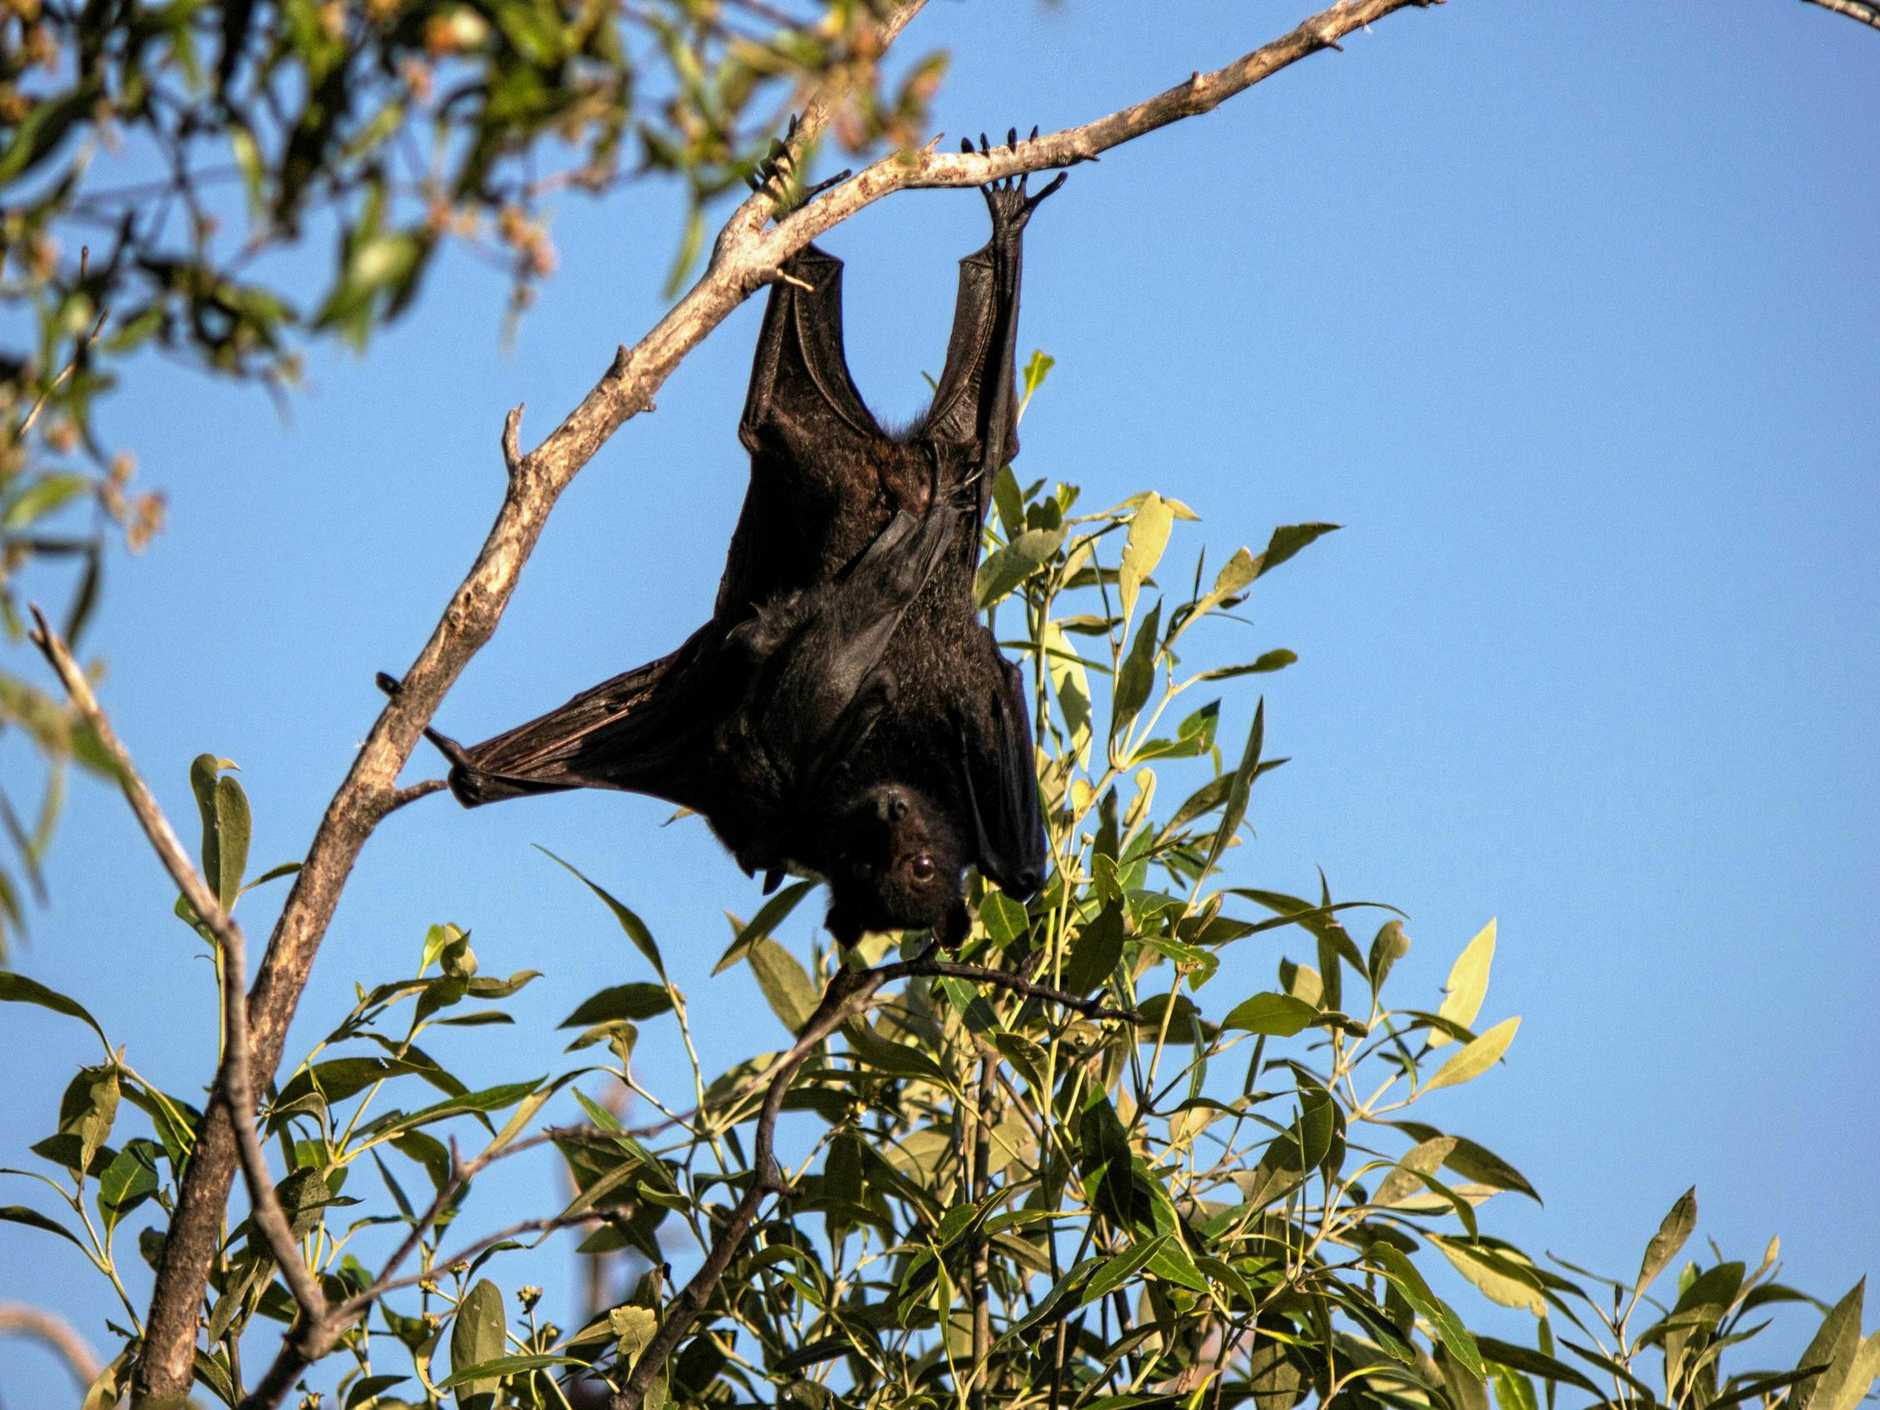 Photos submitted by Malcolm Wells of Flying Fox information day  at Appleton Park, was being held to educate the public on the Ross Creek bat colony, while also trying to address the negative stereotypes surrounding the mammals.